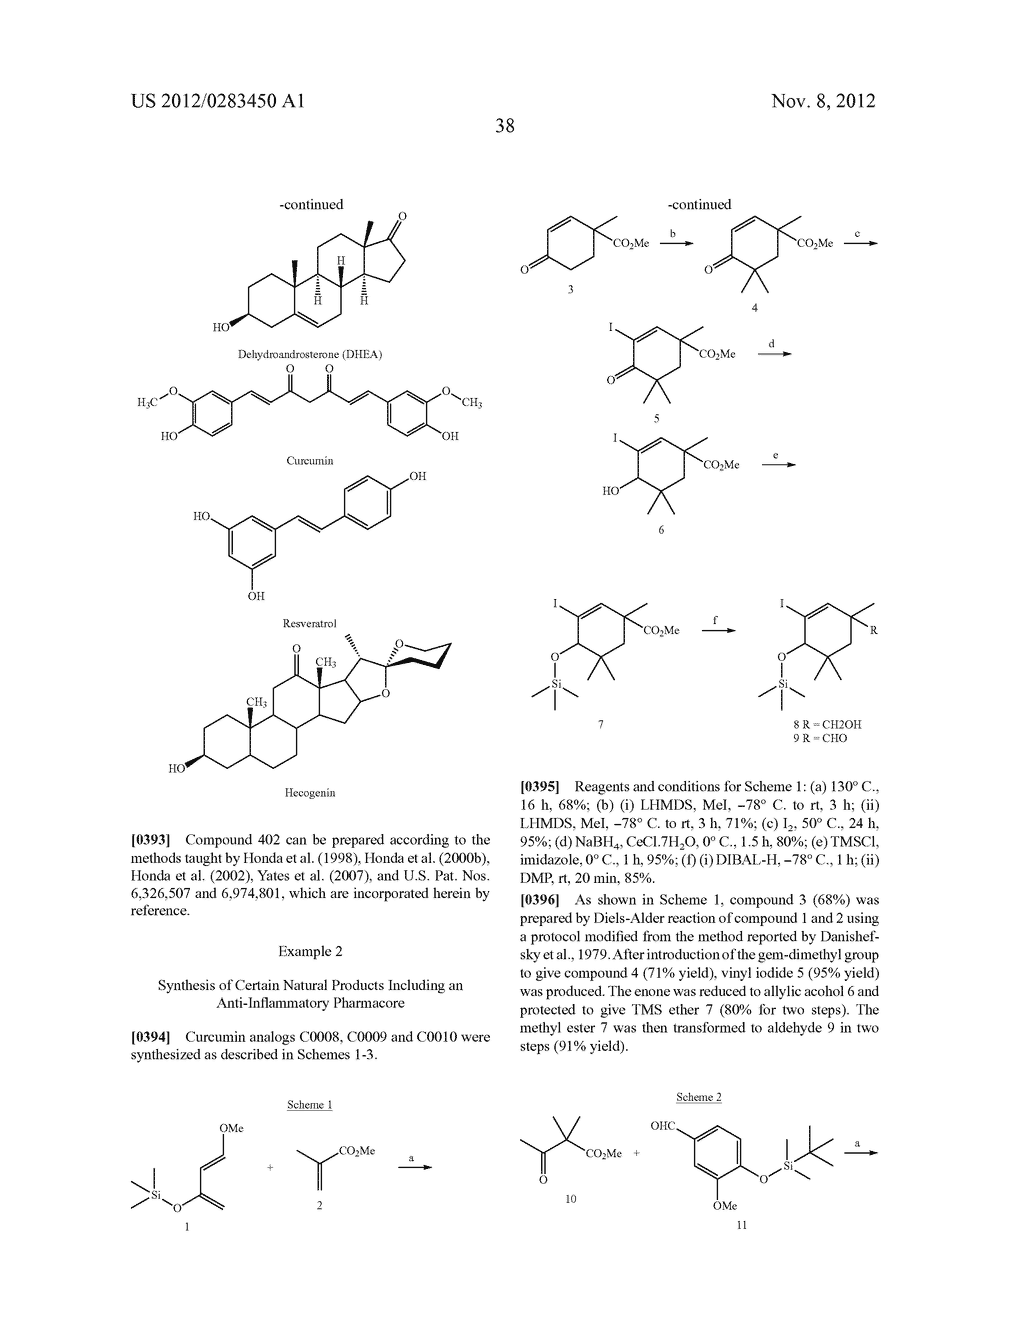 COMPOUNDS INCLUDING AN ANTI-INFLAMMATORY PHARMACORE AND METHODS OF USE - diagram, schematic, and image 63